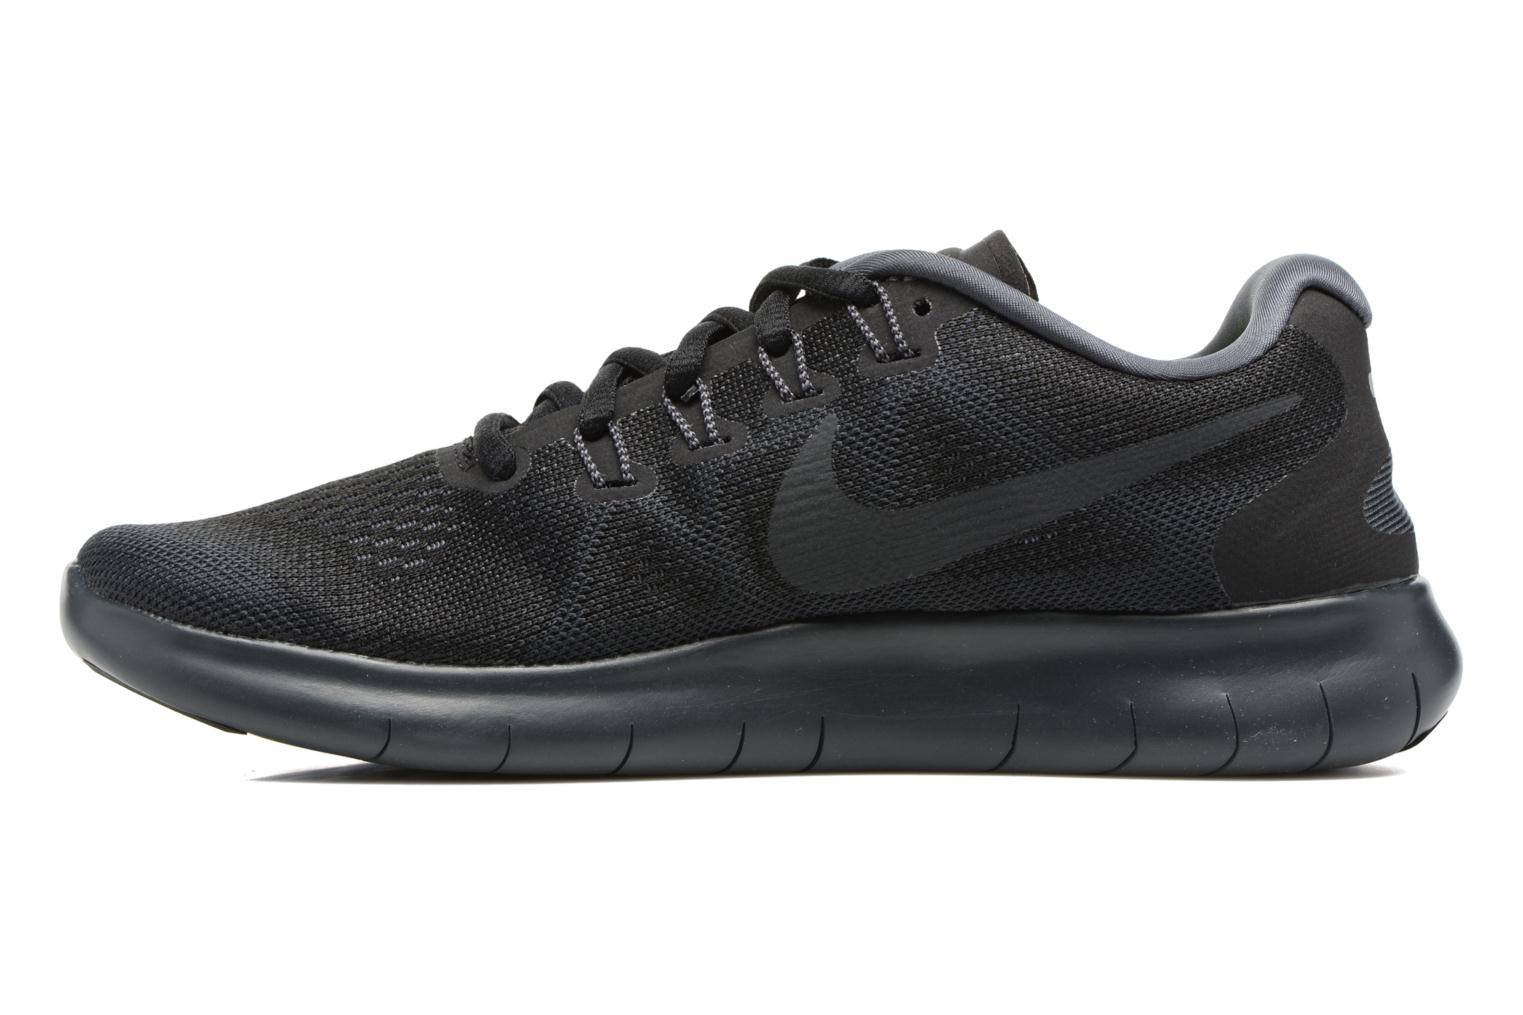 Wmns Nike Free Rn 2017 Black/Anthracite-Dark Grey-Cool Grey